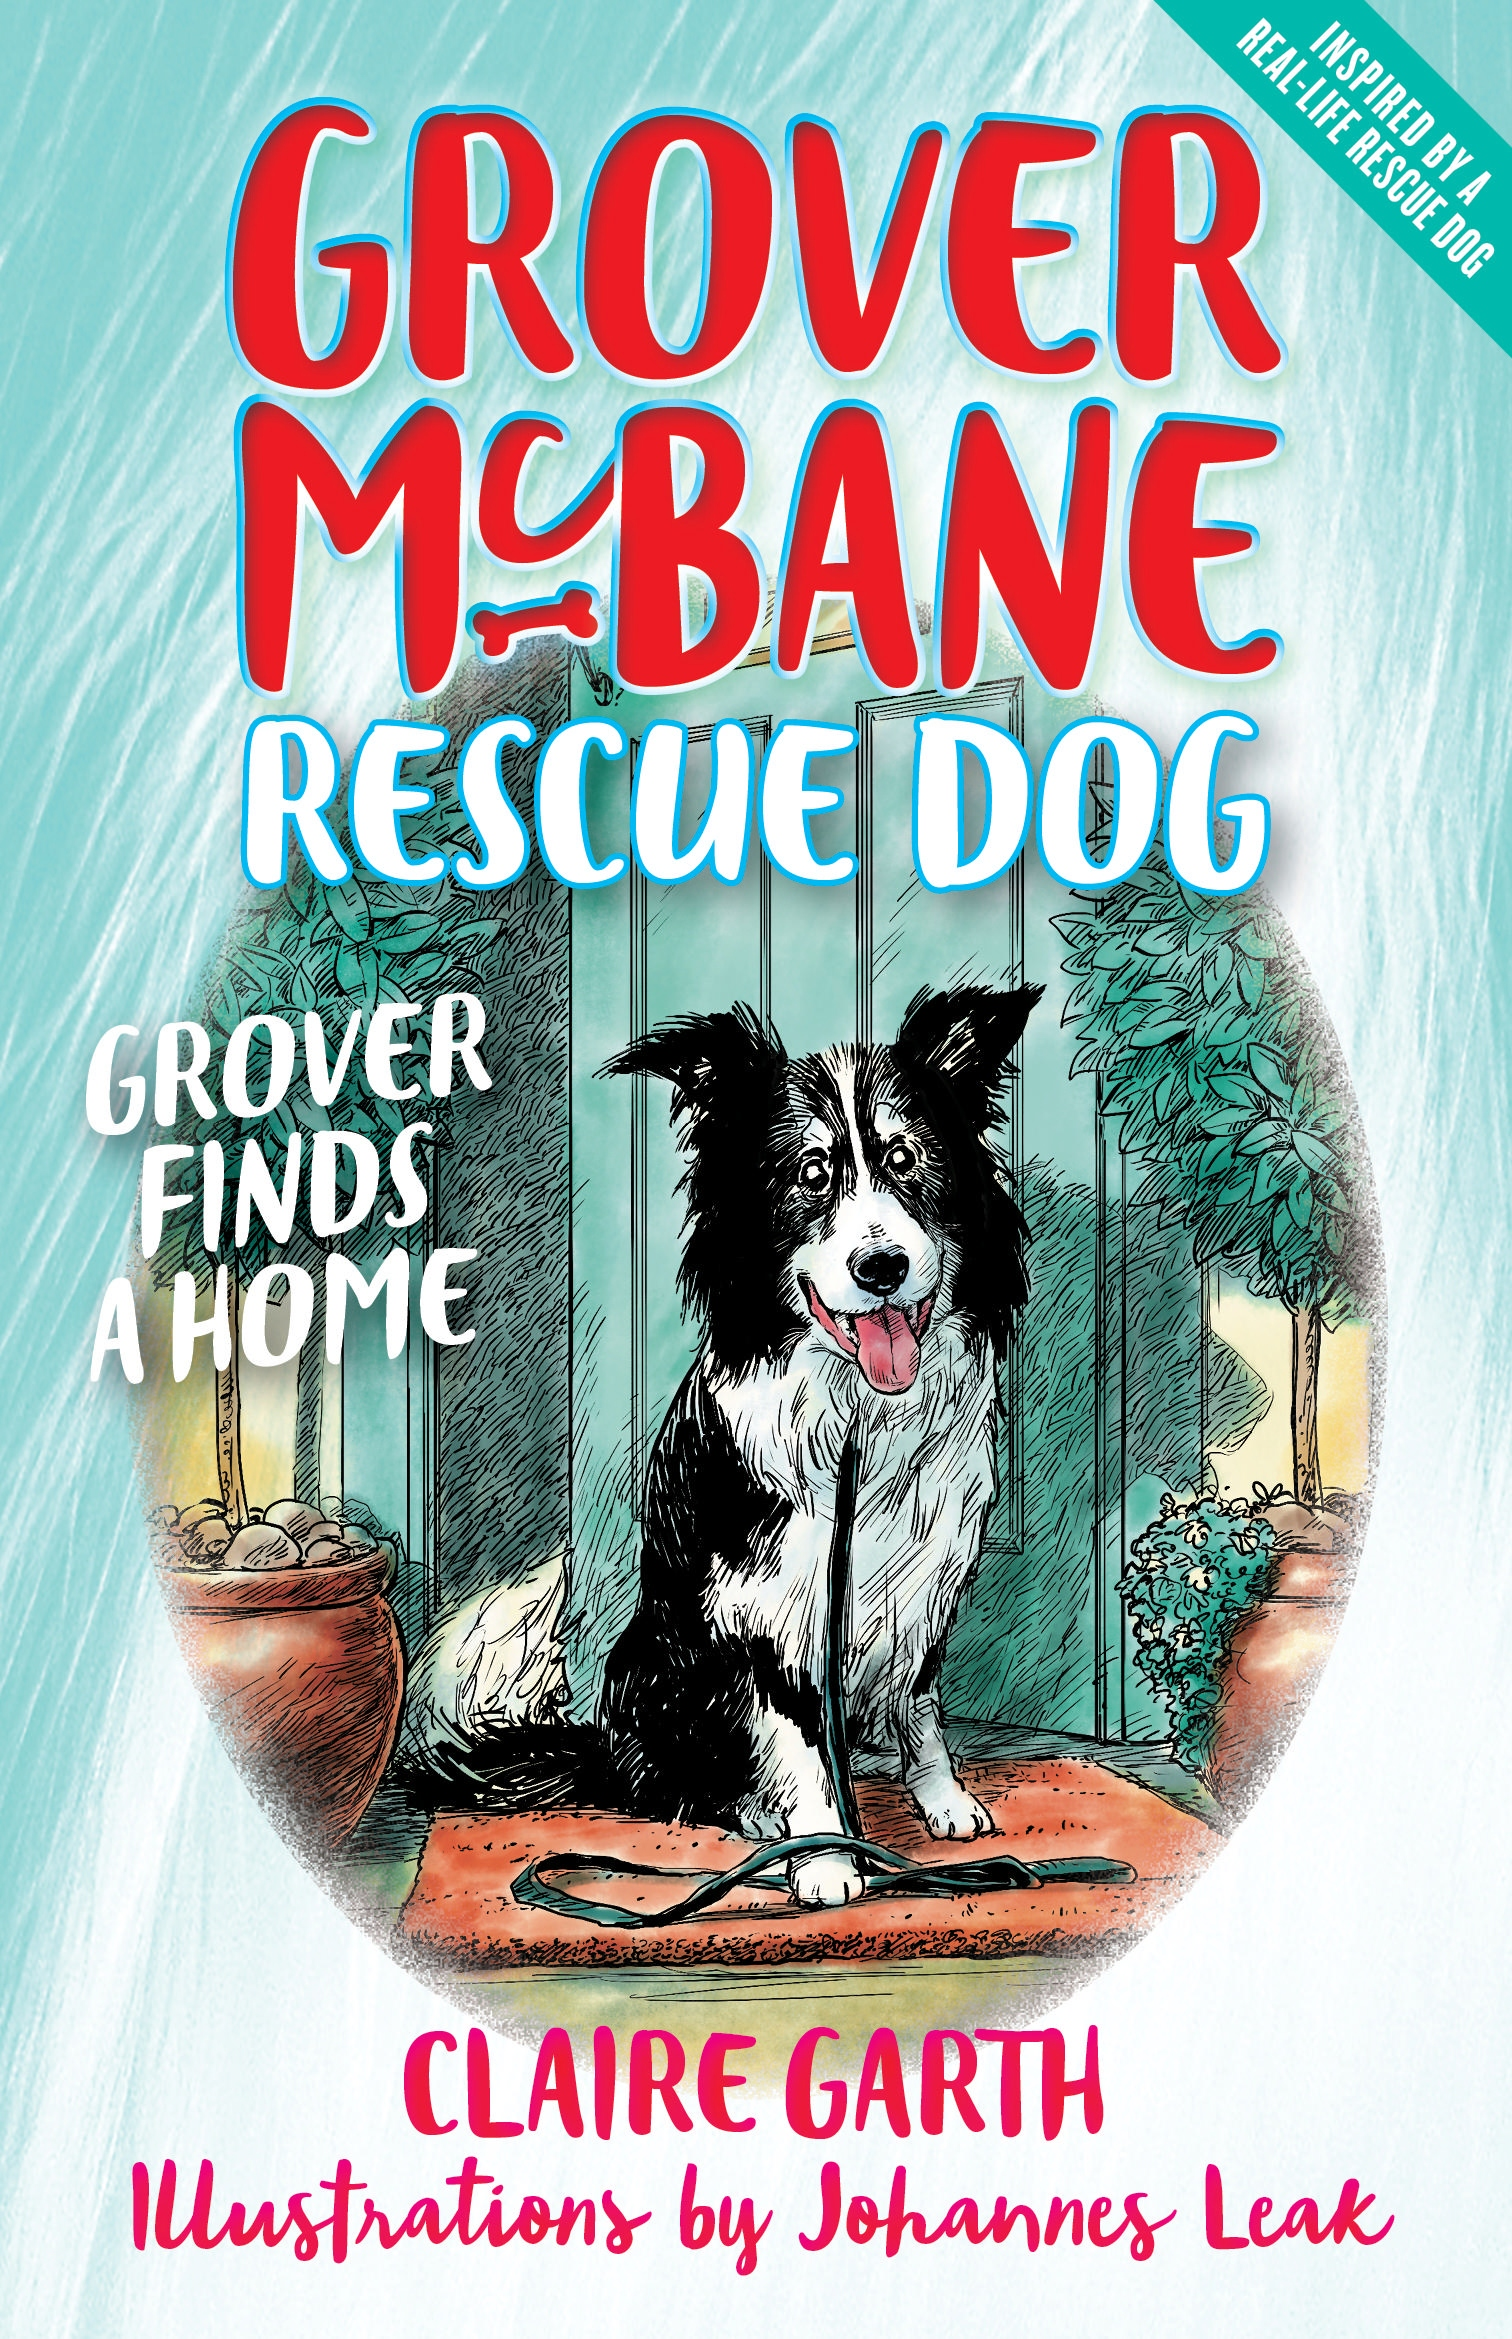 Grover McBane, Rescue Dog: Grover Finds a Home